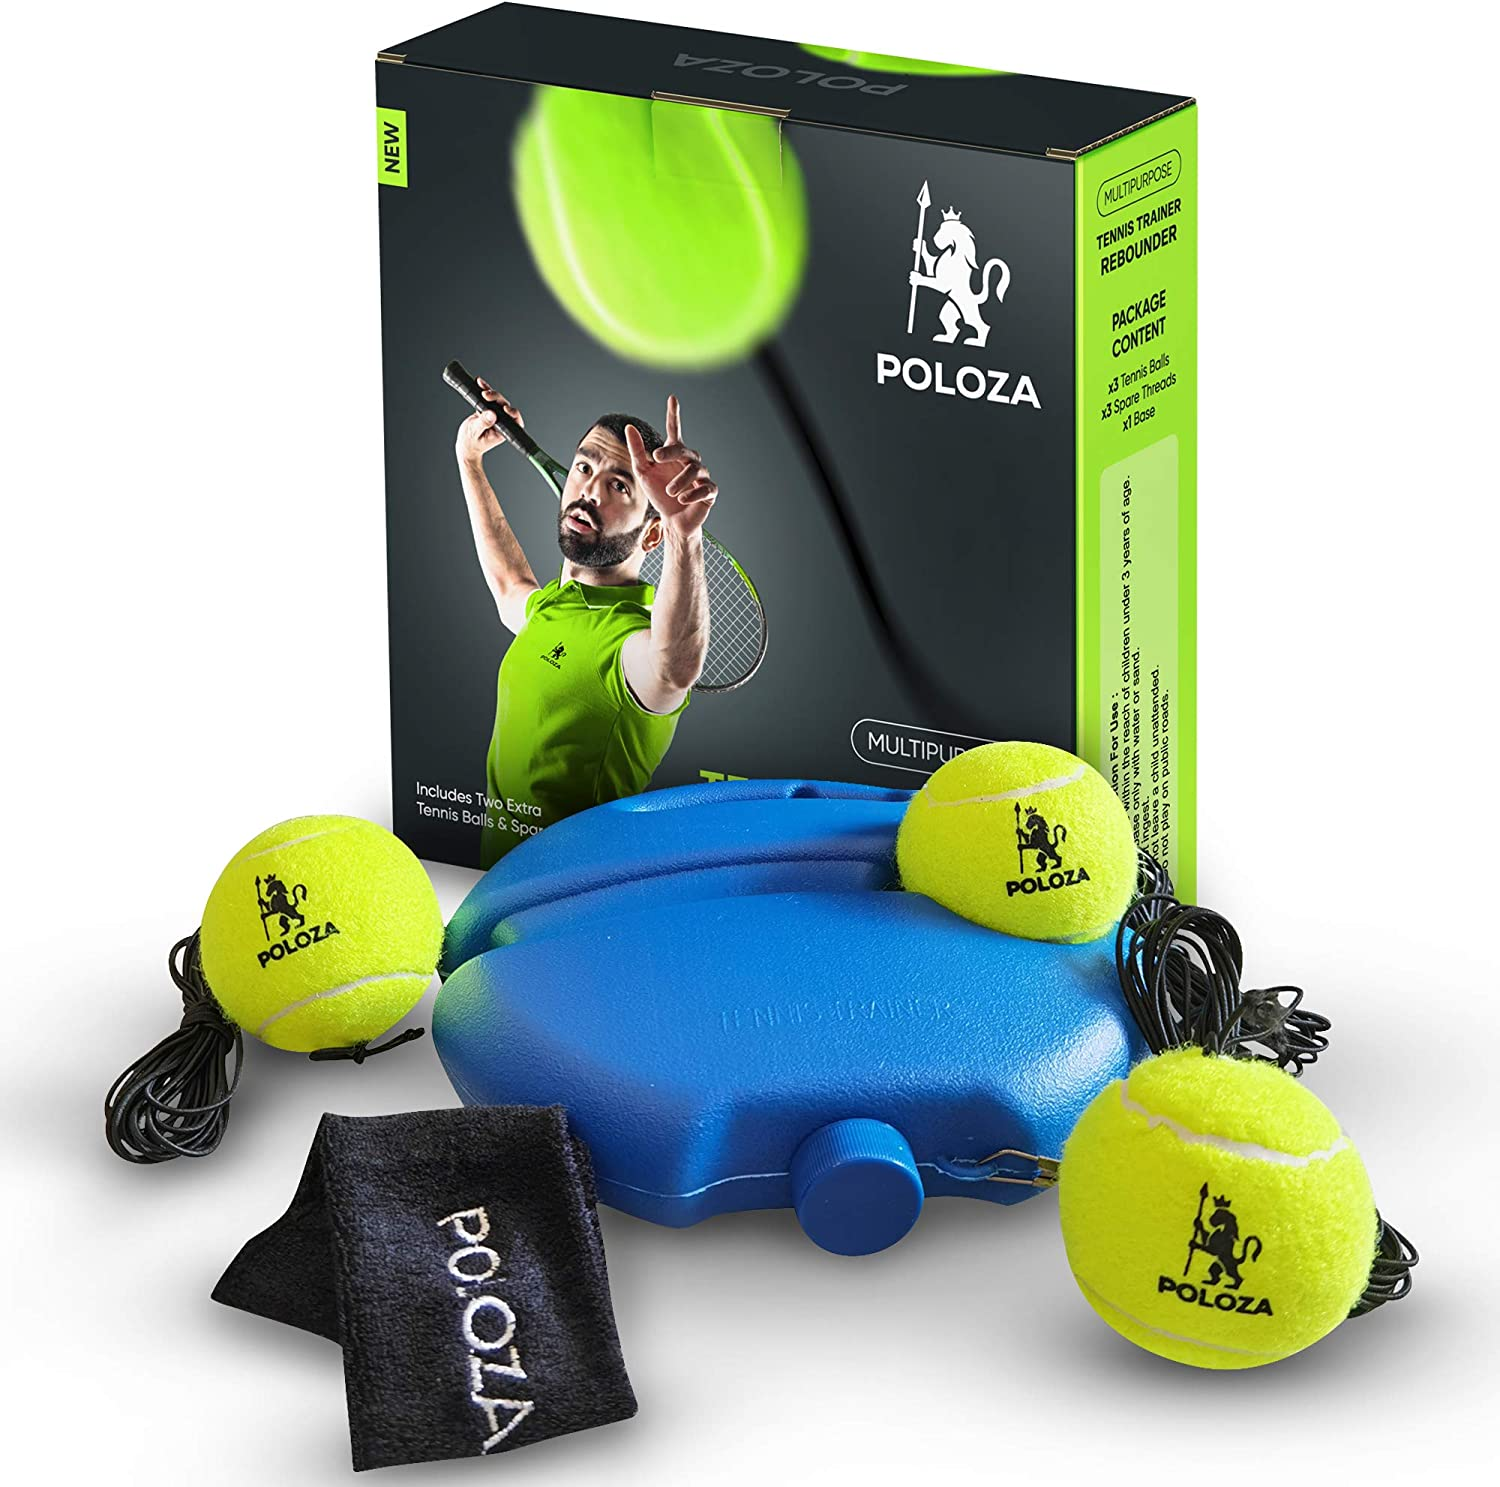 POLOZA Professional Tennis Trainer – Tennis Trainer Rebound Ball – Tennis Equipment for Self-Practice – Portable Tennis Practice Rebounder – Solo Tennis Trainer with Long Ropes and Tennis Headband